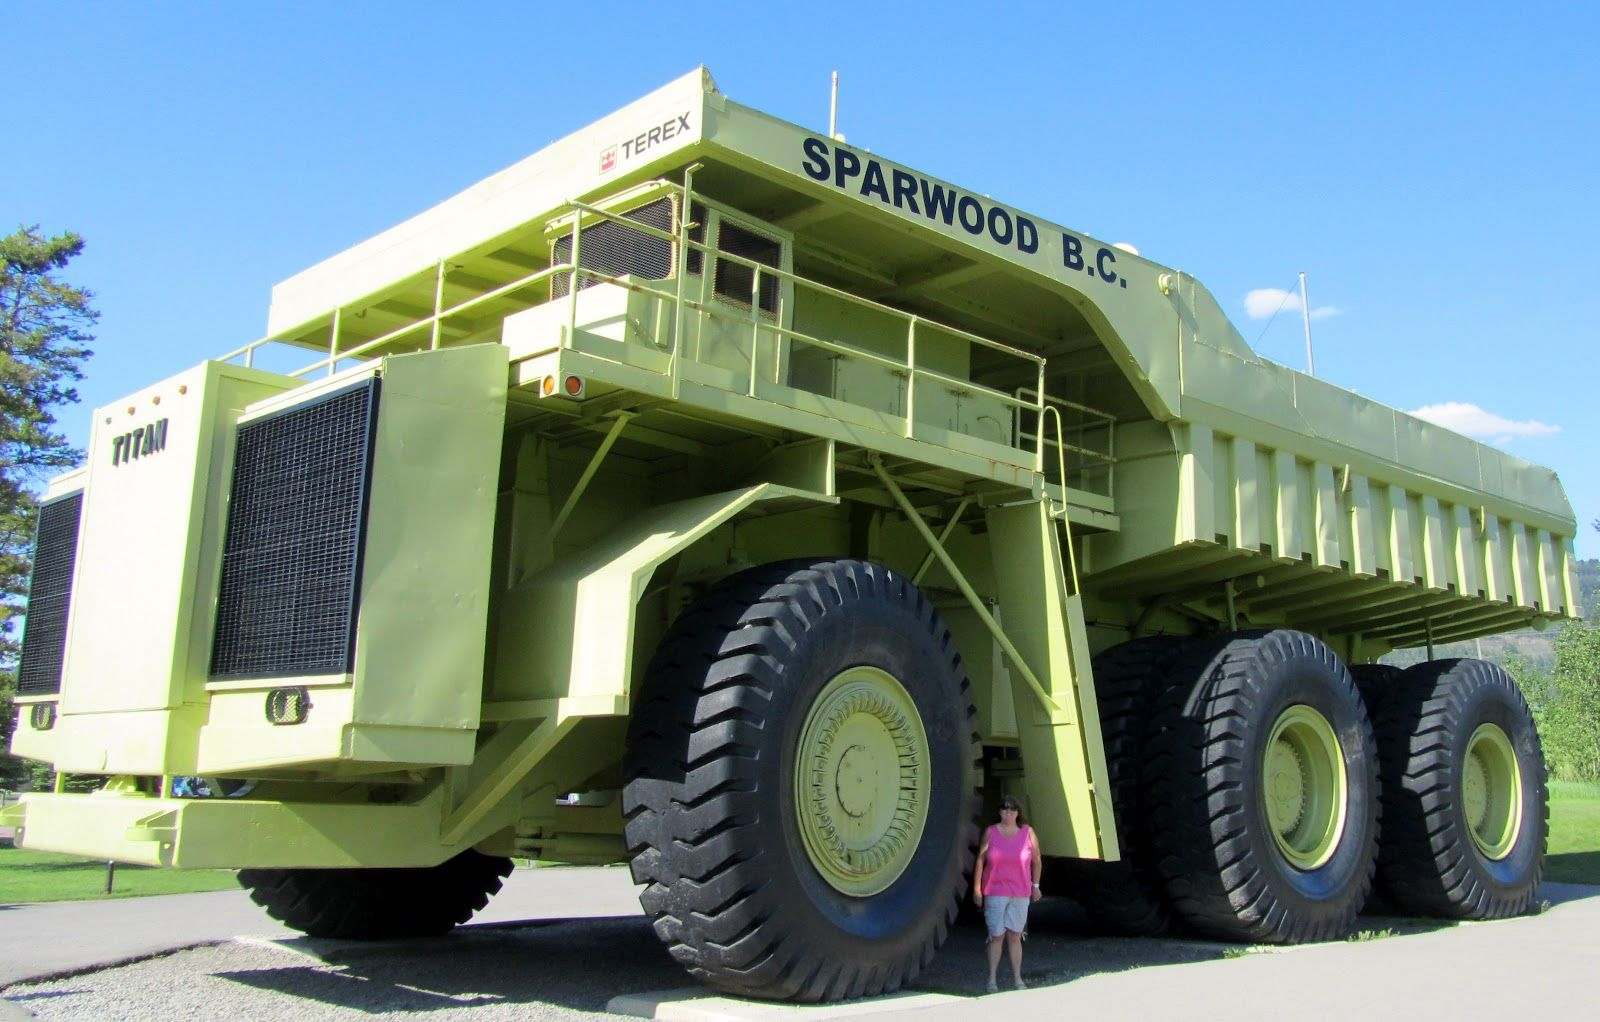 Biggest Dump Truck In The World With Images Trucks Dump